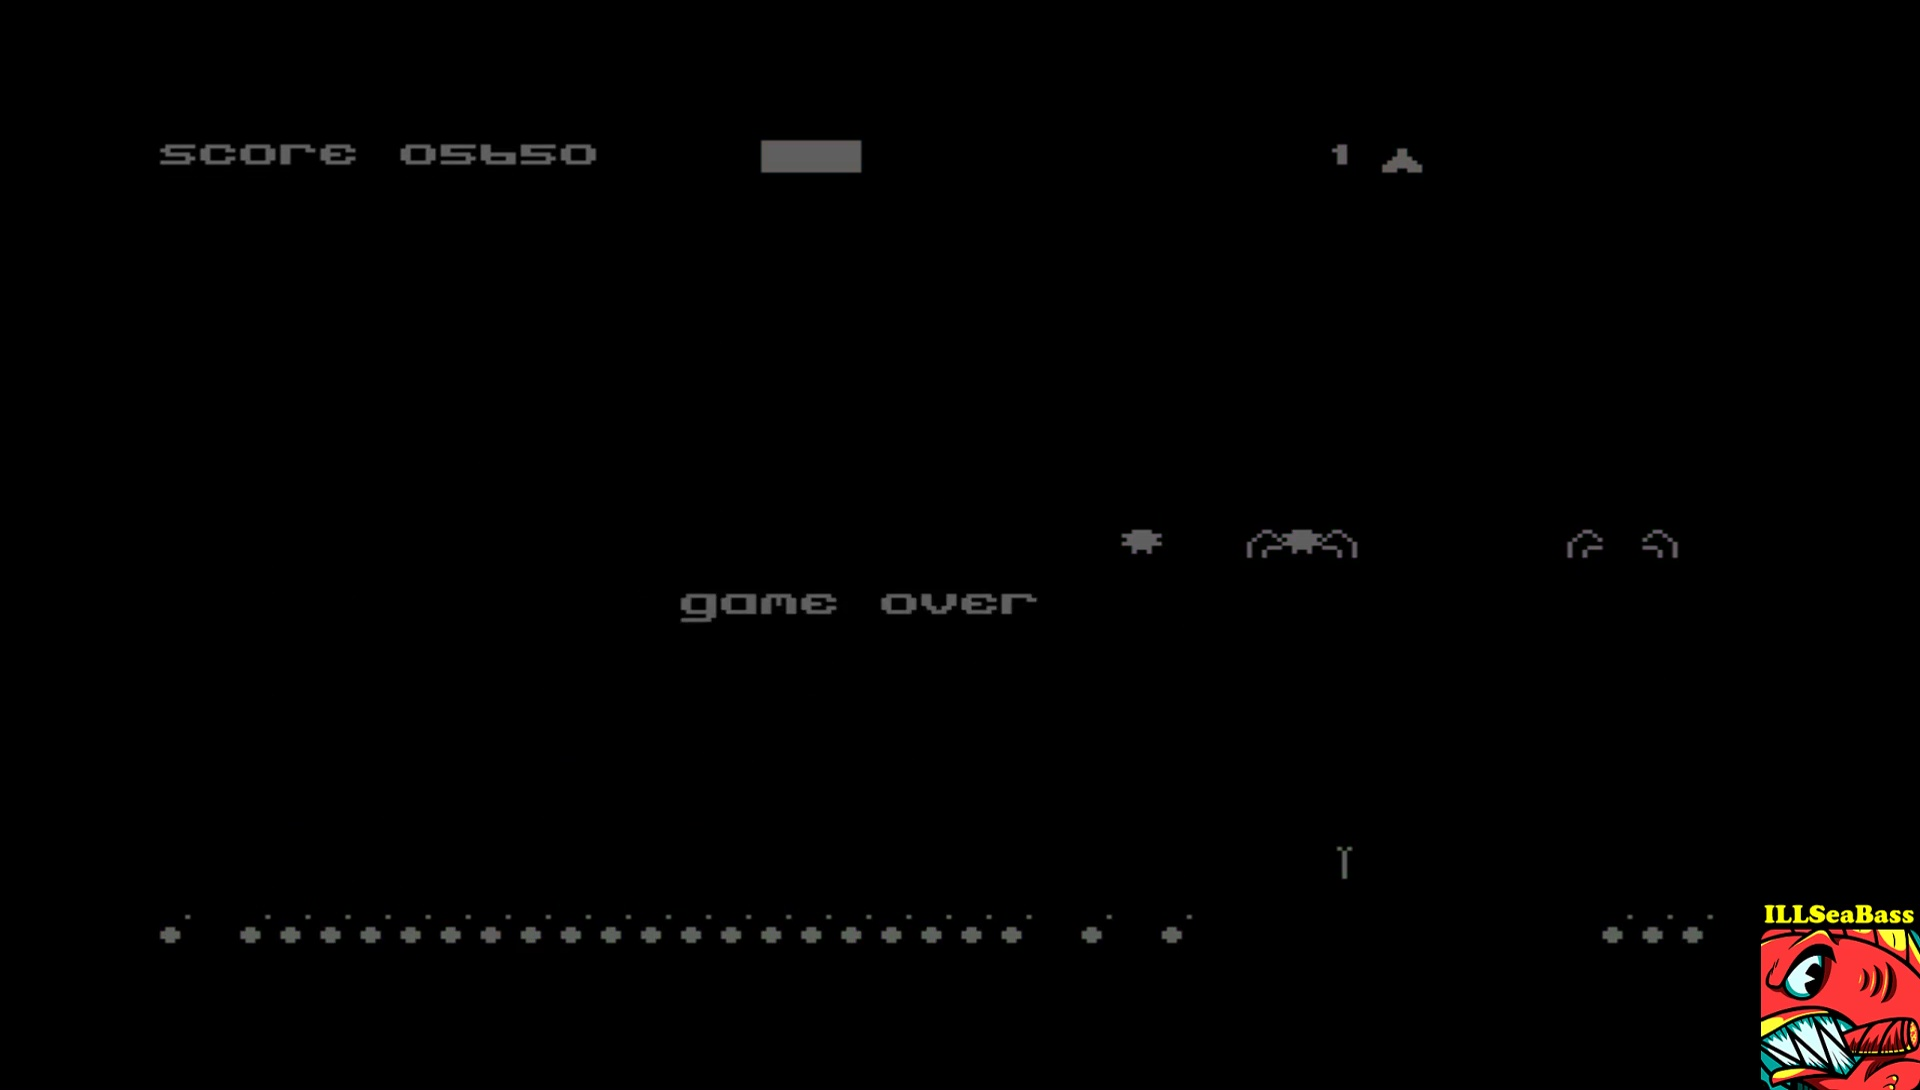 ILLSeaBass: Spyders (Commodore 64 Emulated) 5,650 points on 2017-06-17 08:30:49